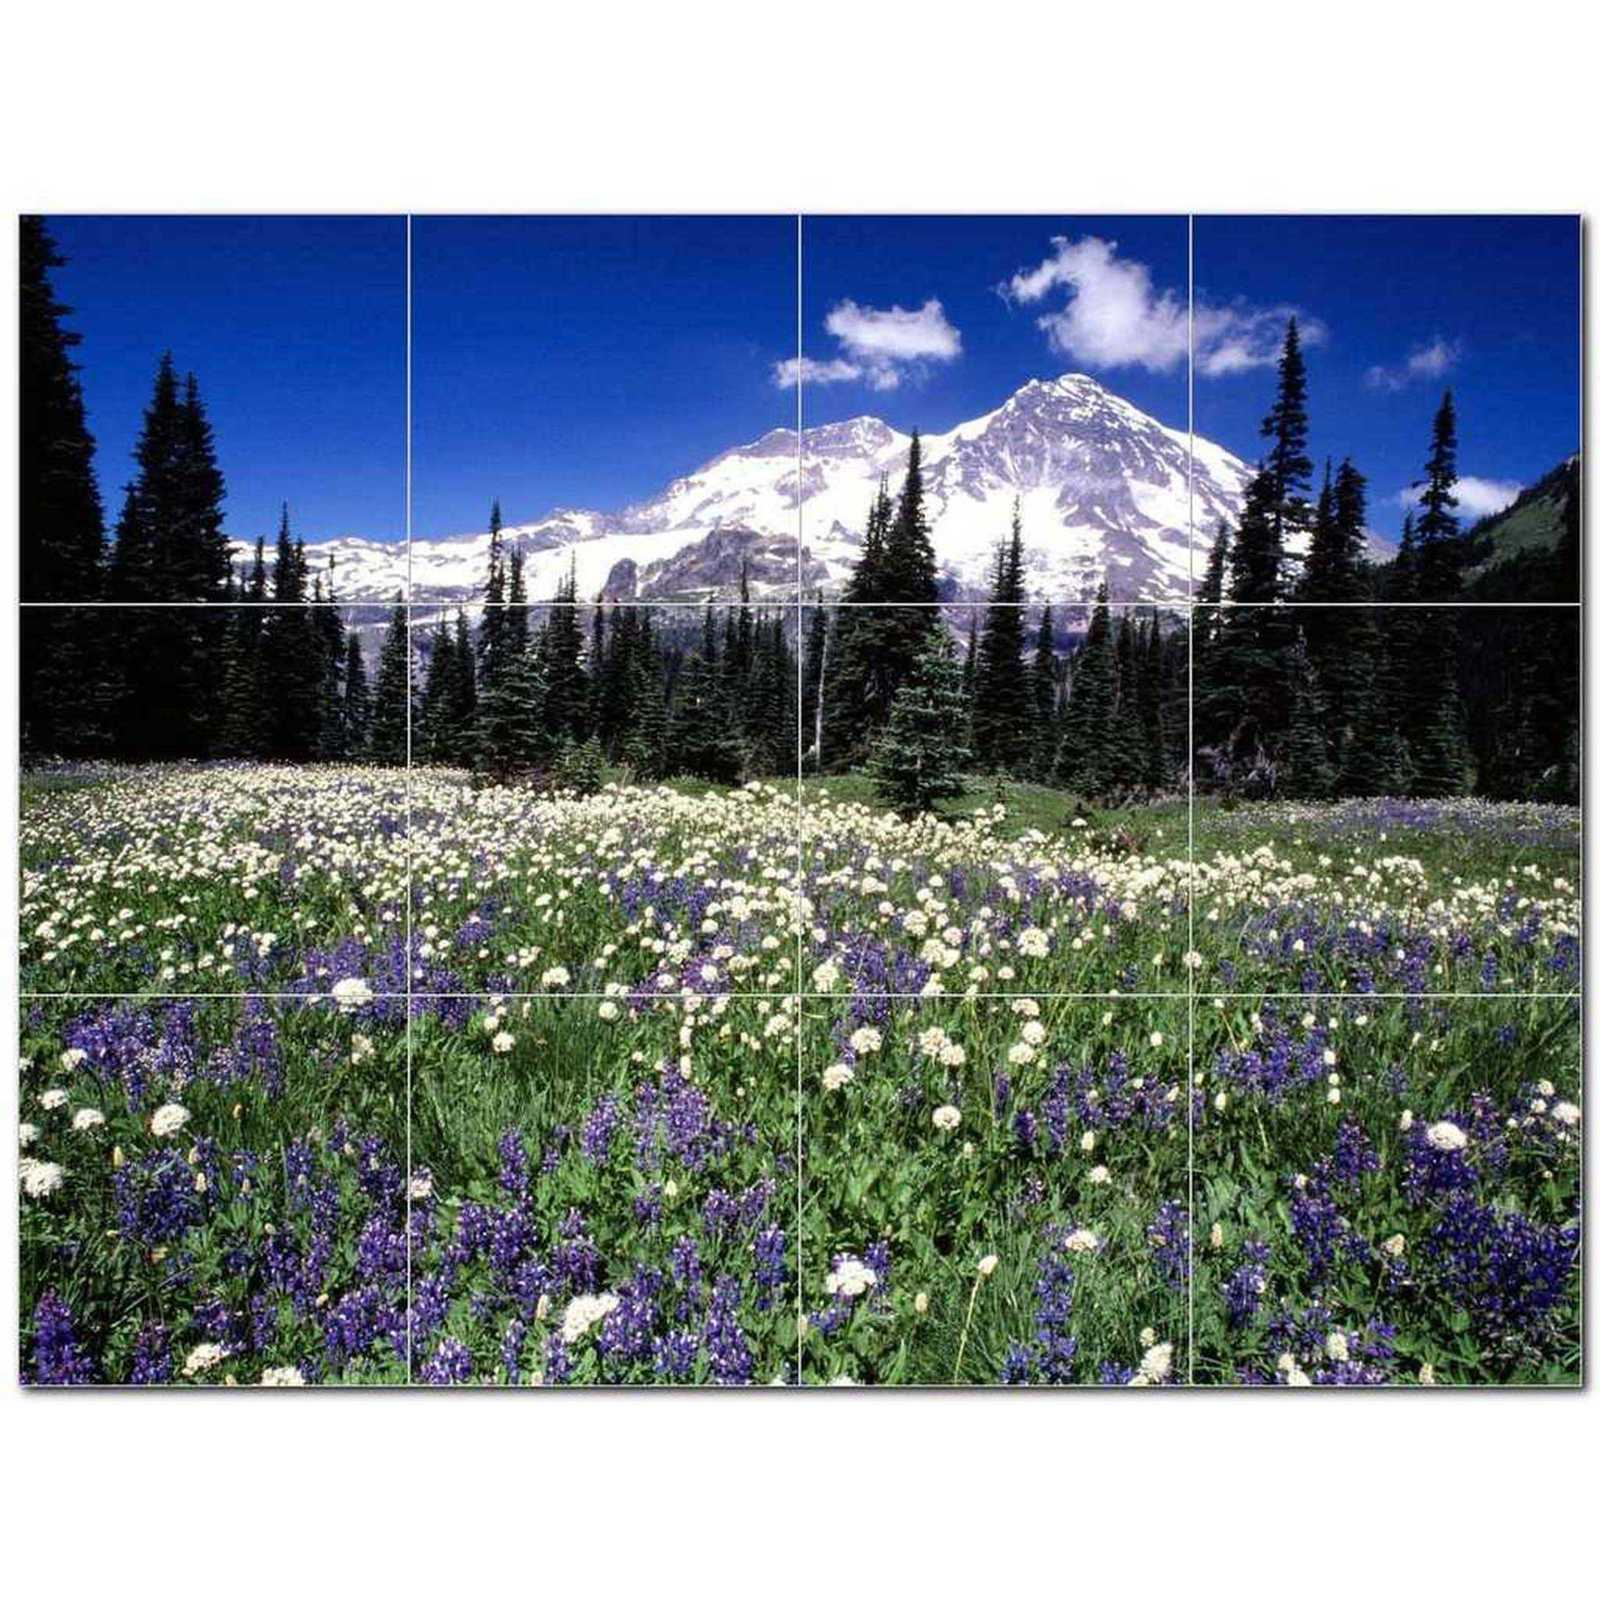 Primary image for Mountain Picture Ceramic Tile Mural Kitchen Backsplash Bathroom Shower BAZ405564